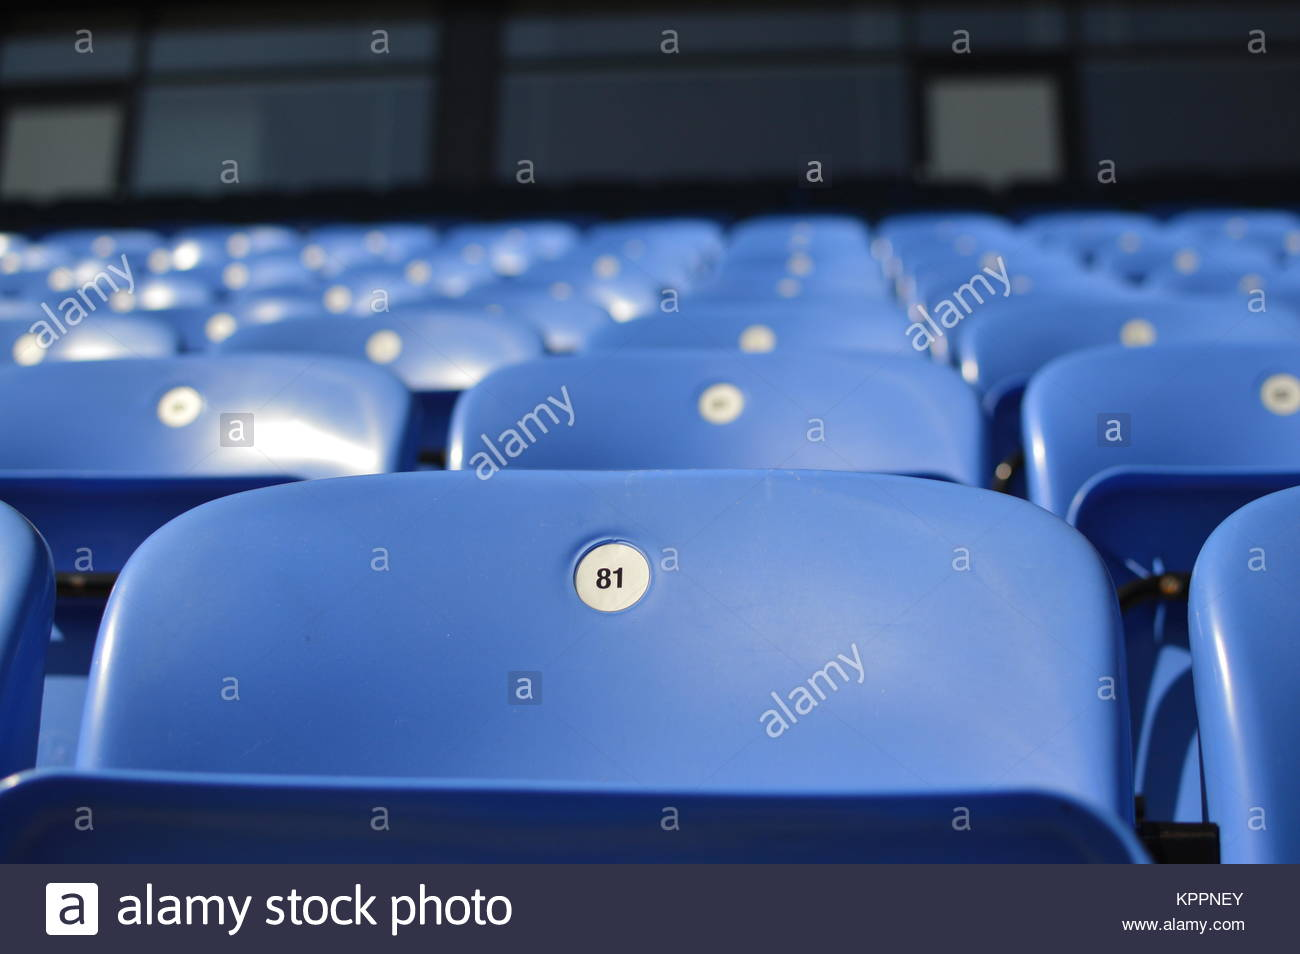 Numbered blue seats in sports stadium - Stock Image